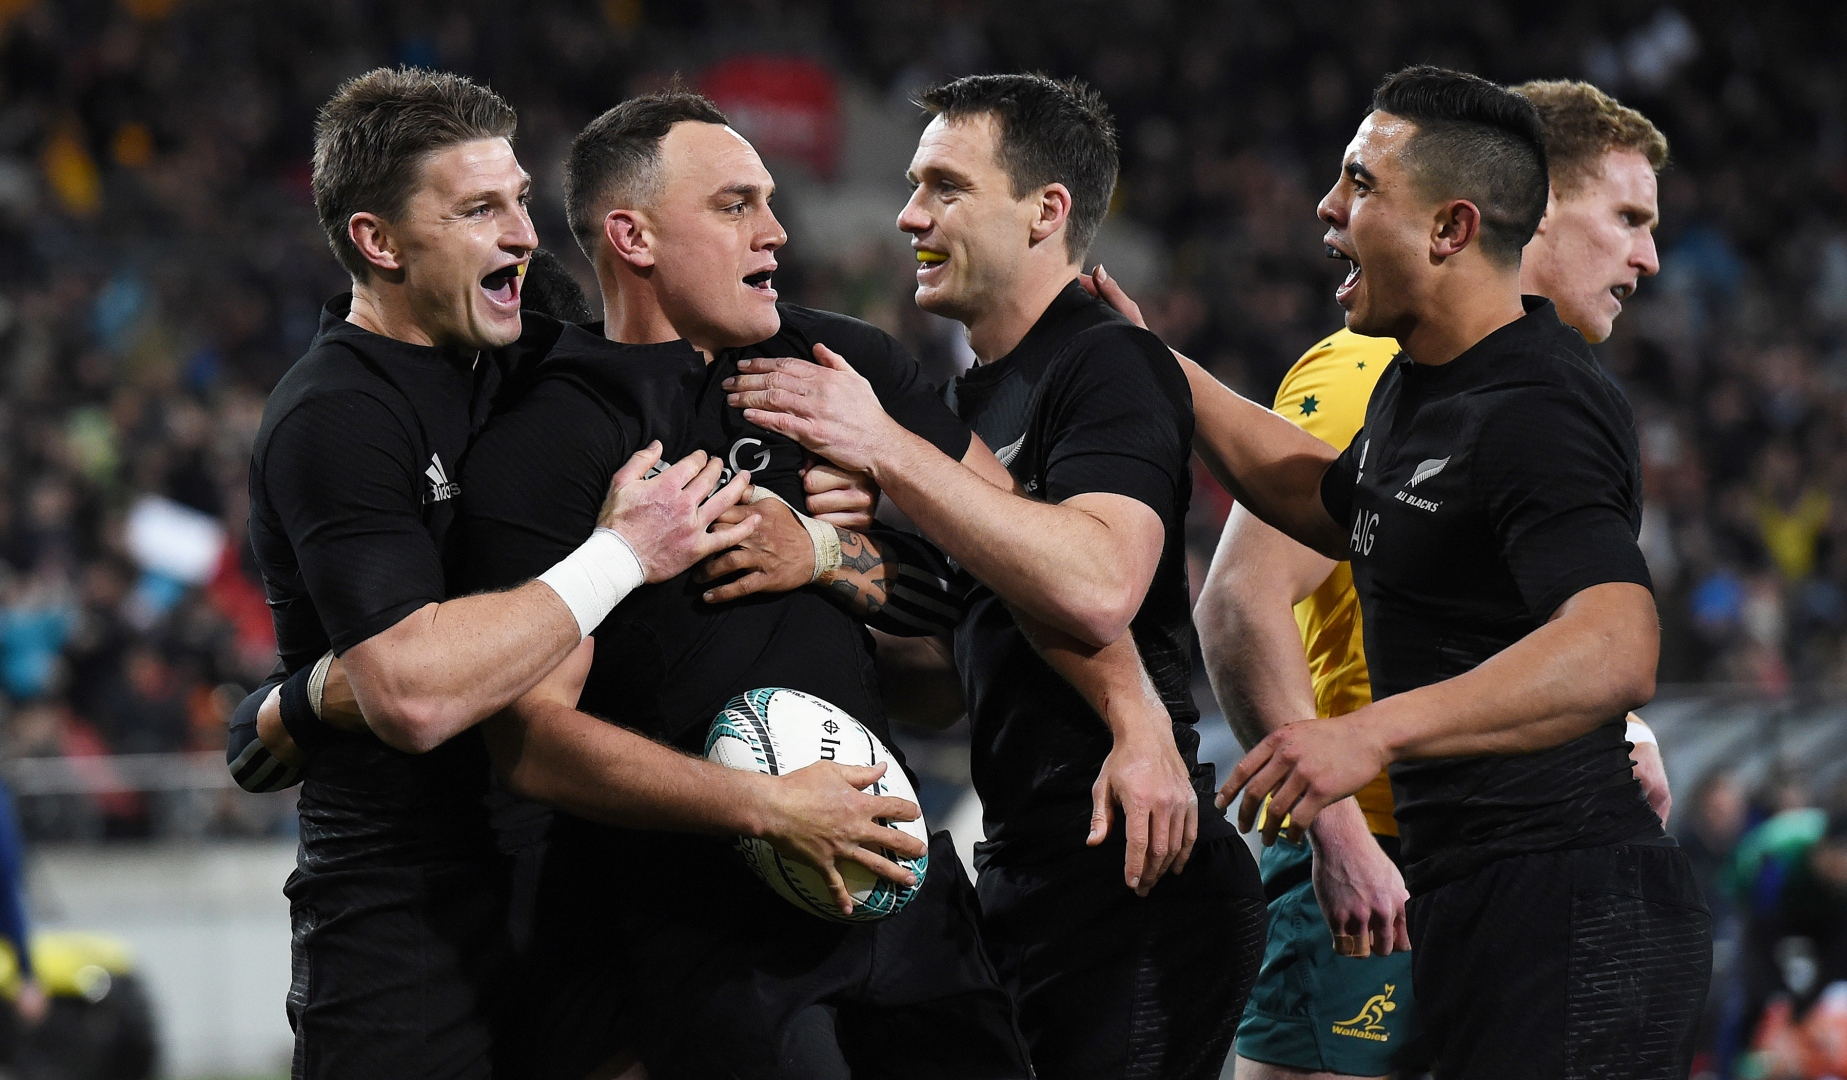 Lions Scout: New Zealand prepare for Pumas in Rugby Championship